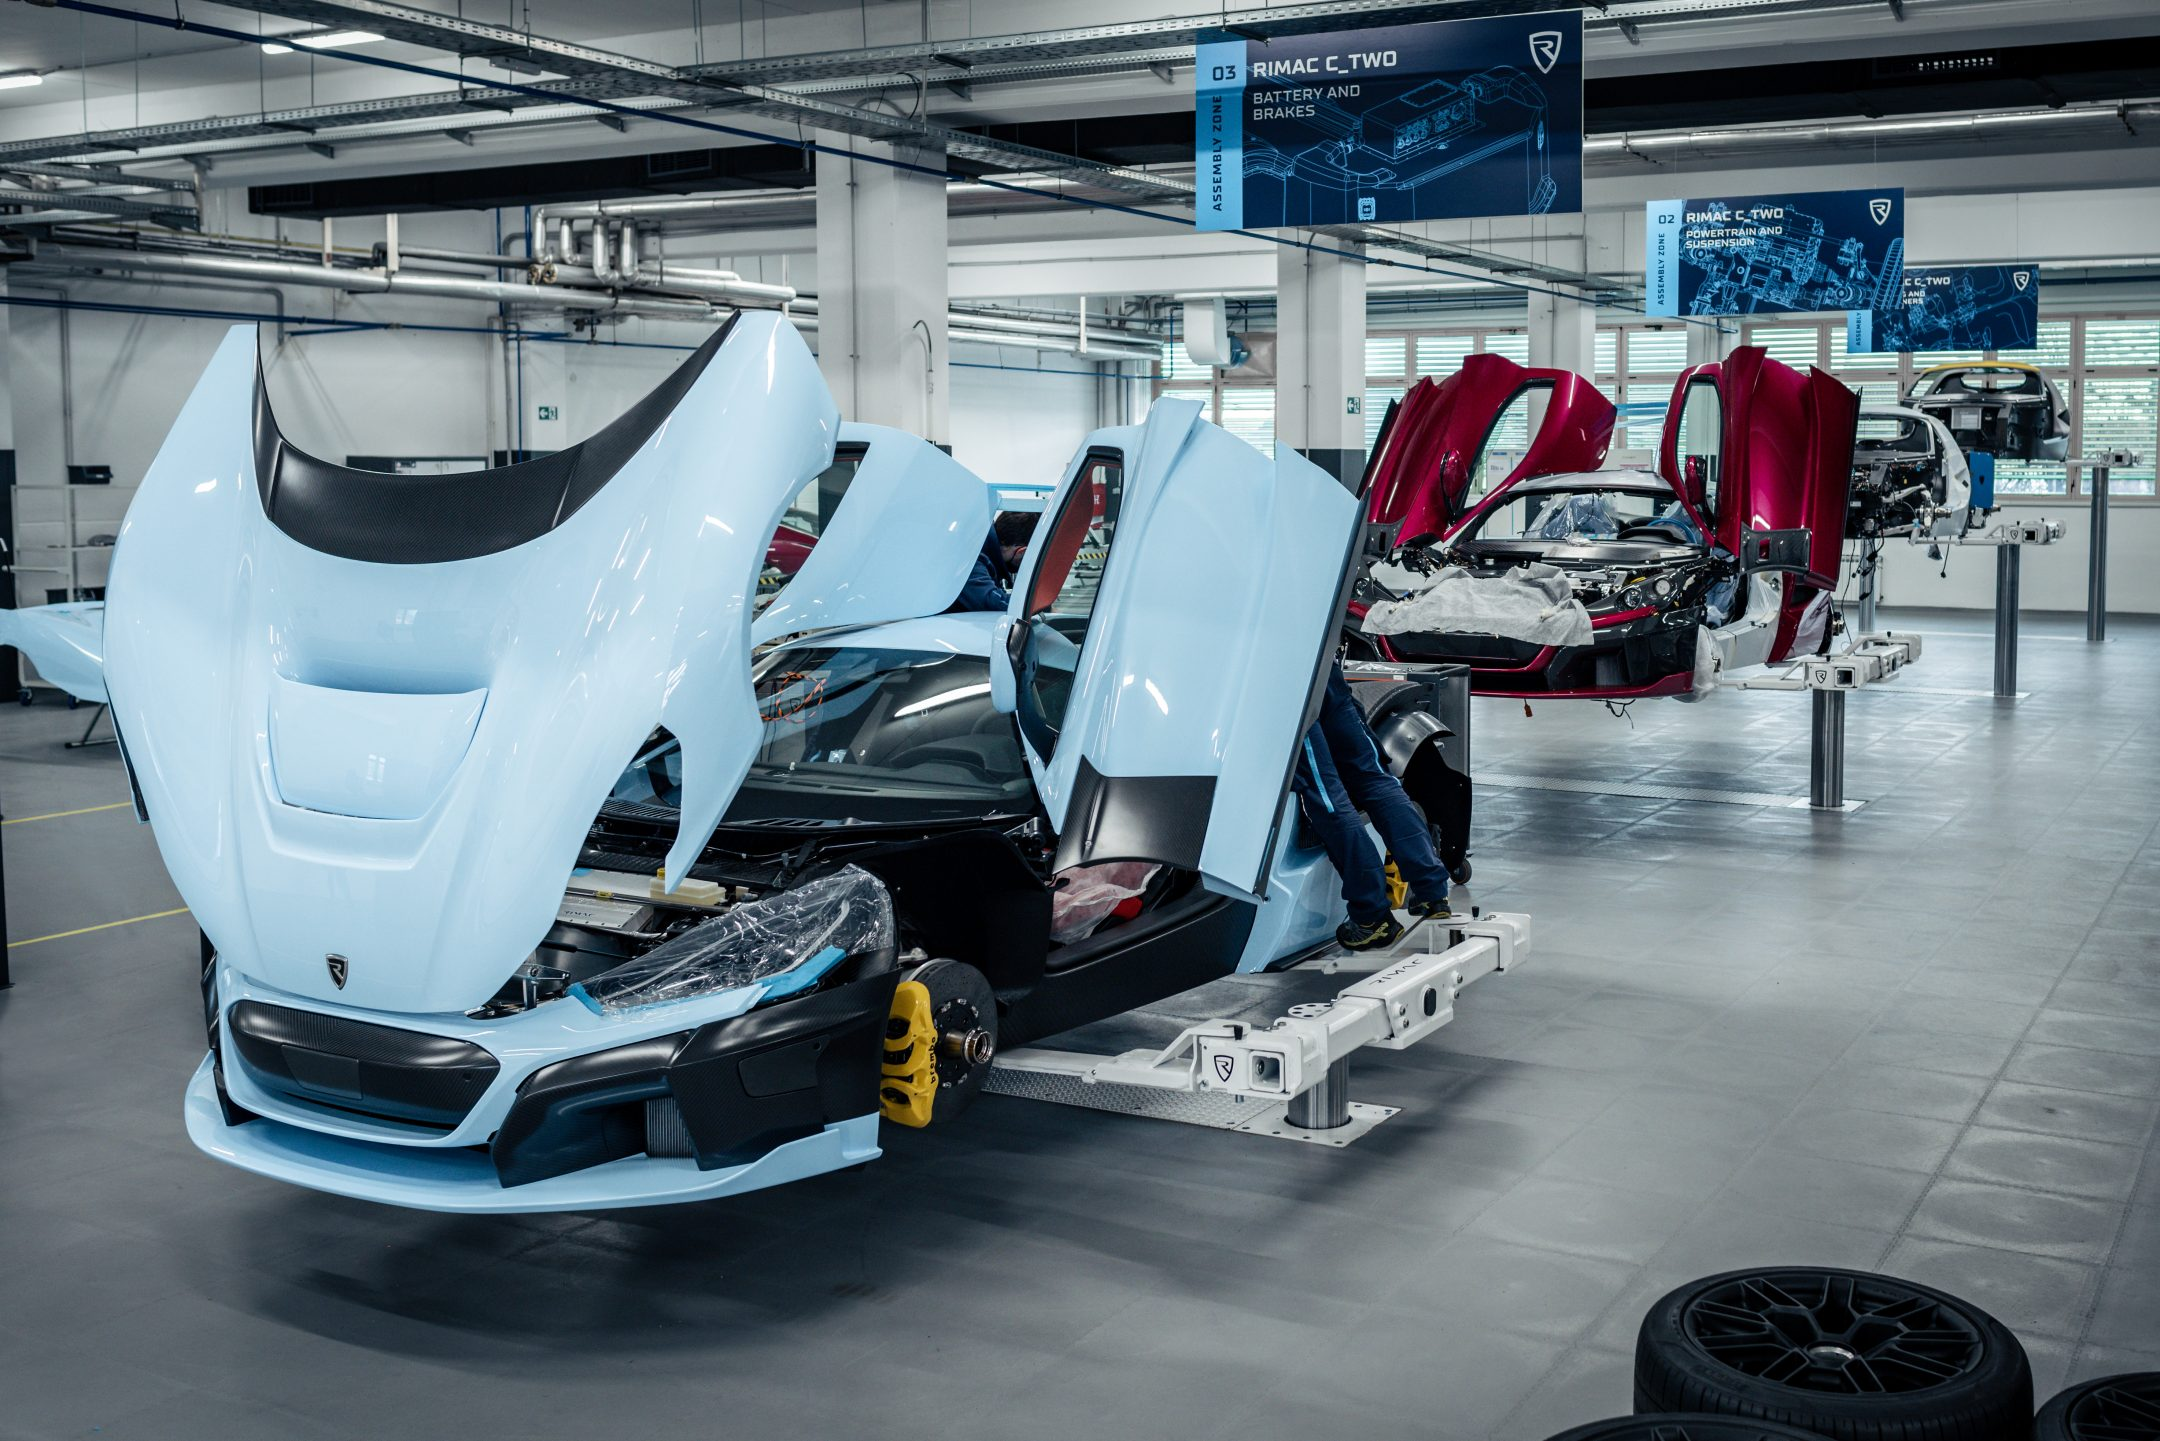 Rimac C_Two assembly line front three-quarter